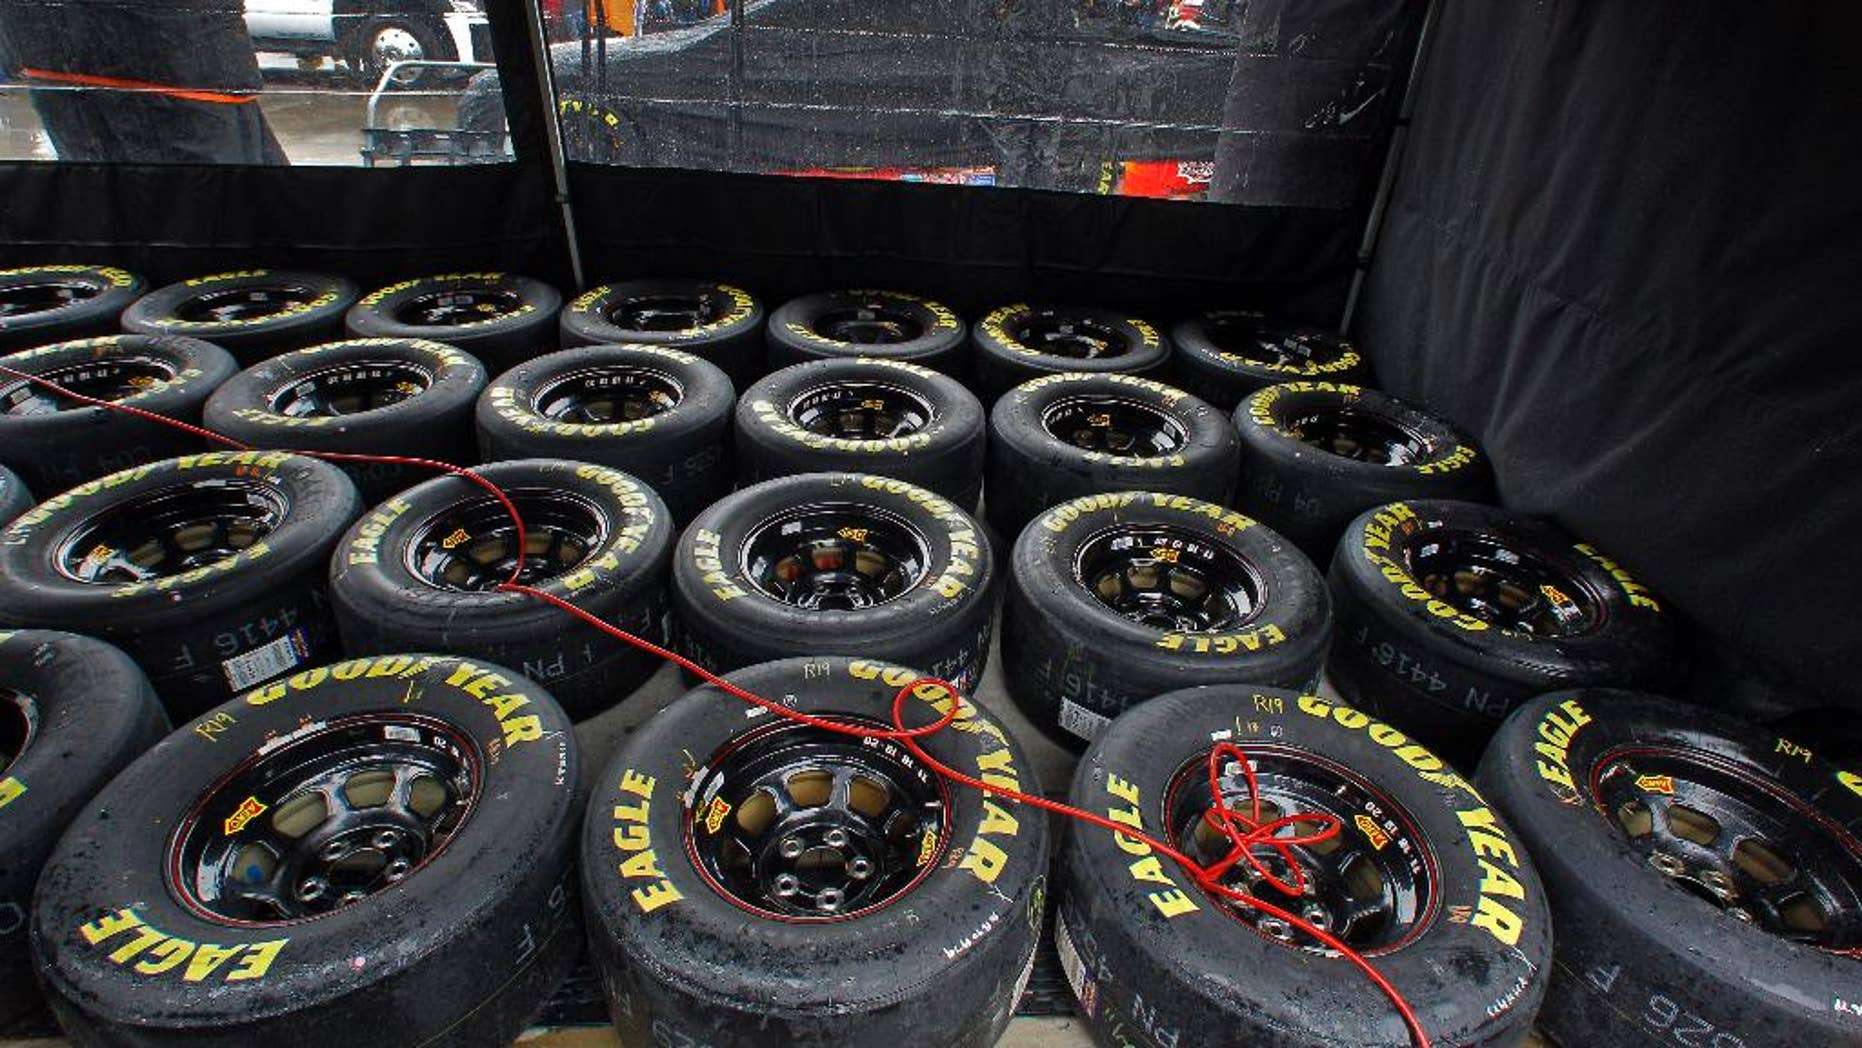 Tires sit under a tent as rain falls before a NASCAR Sprint Cup Series auto race at Bristol Motor Speedway on Sunday, April 19, 2015, in Bristol, Tenn. (AP Photo/Wade Payne)